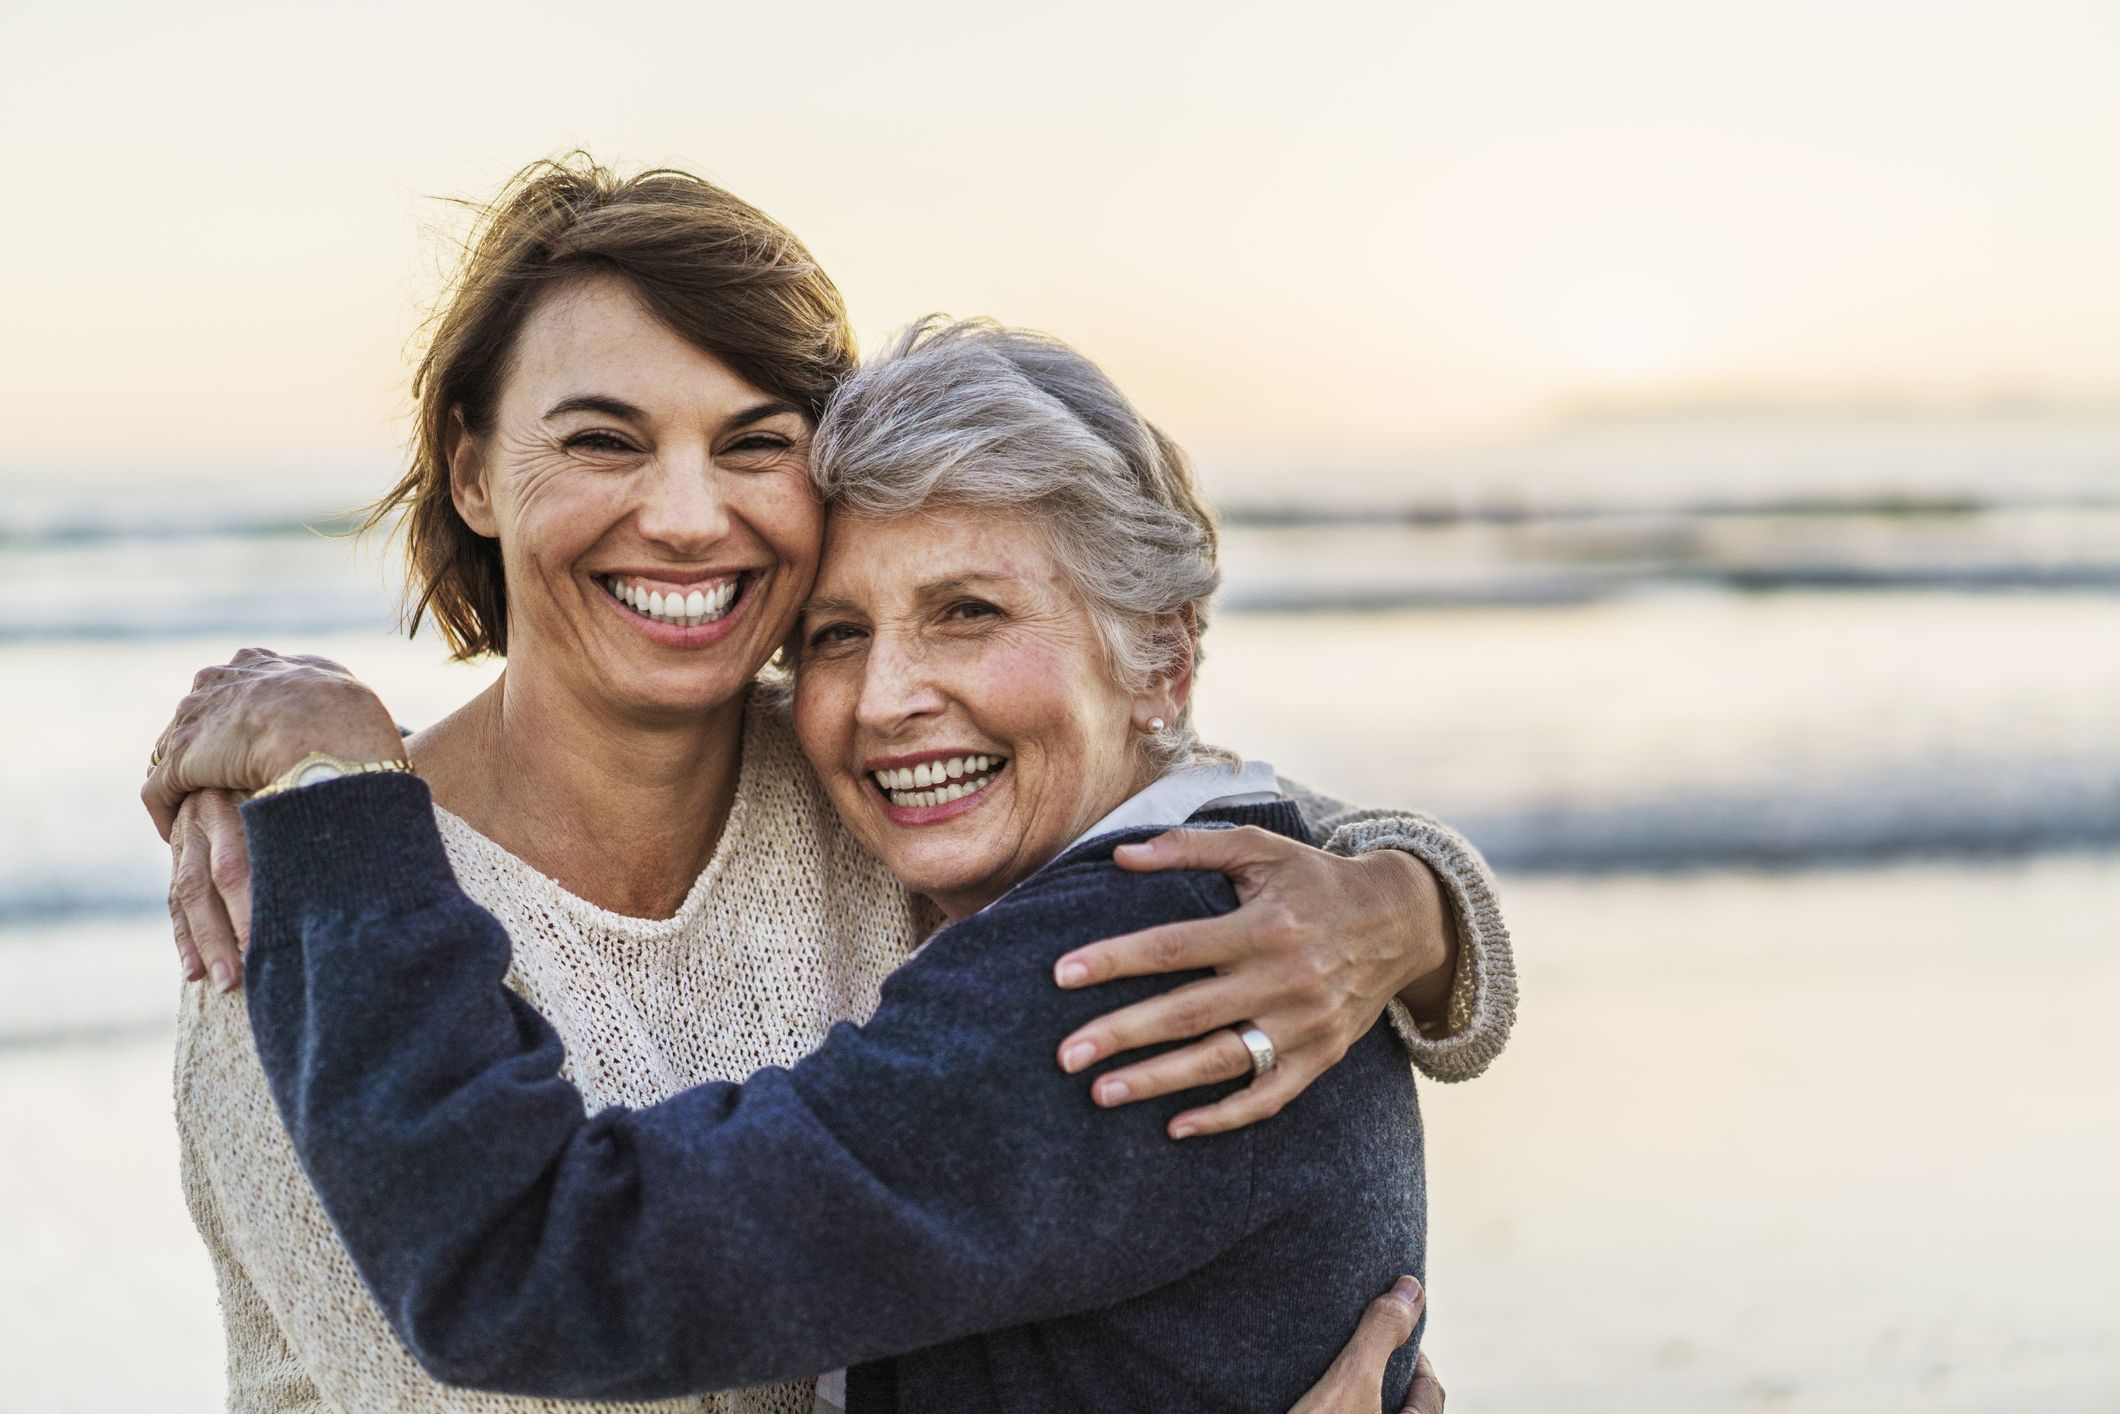 Dementia help: how to support someone with dementia